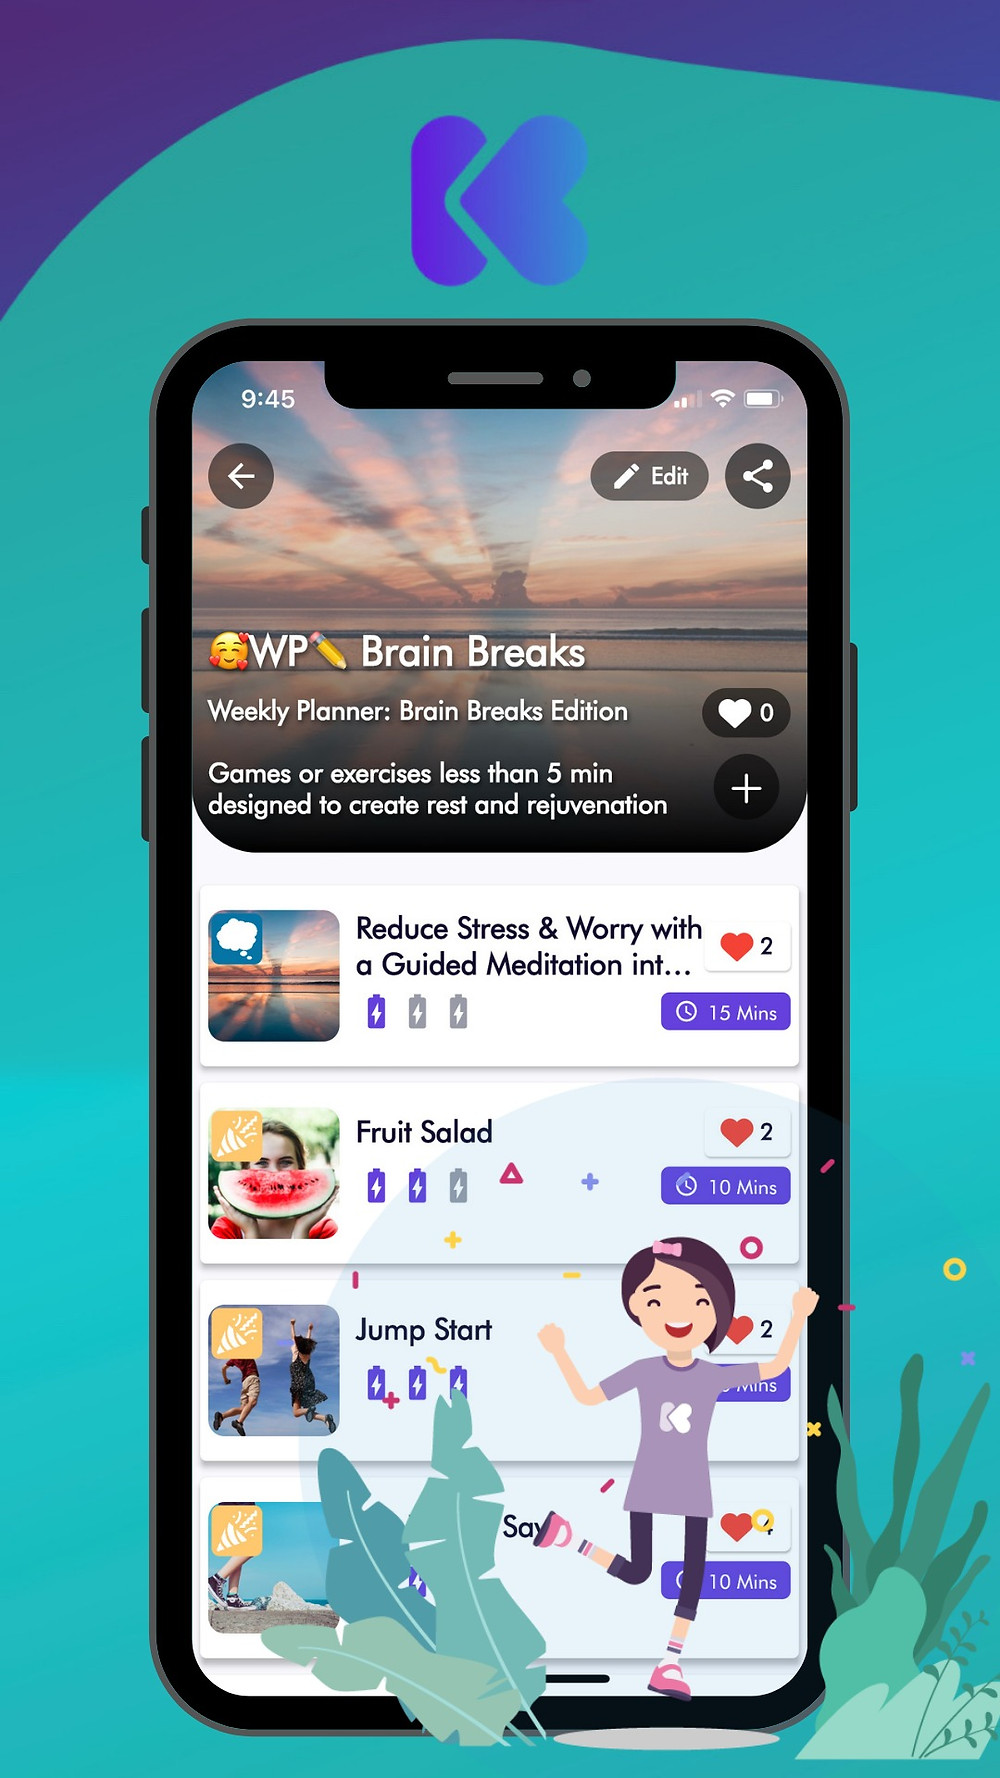 Check out Weekly Planner Playlists in the Kikori App